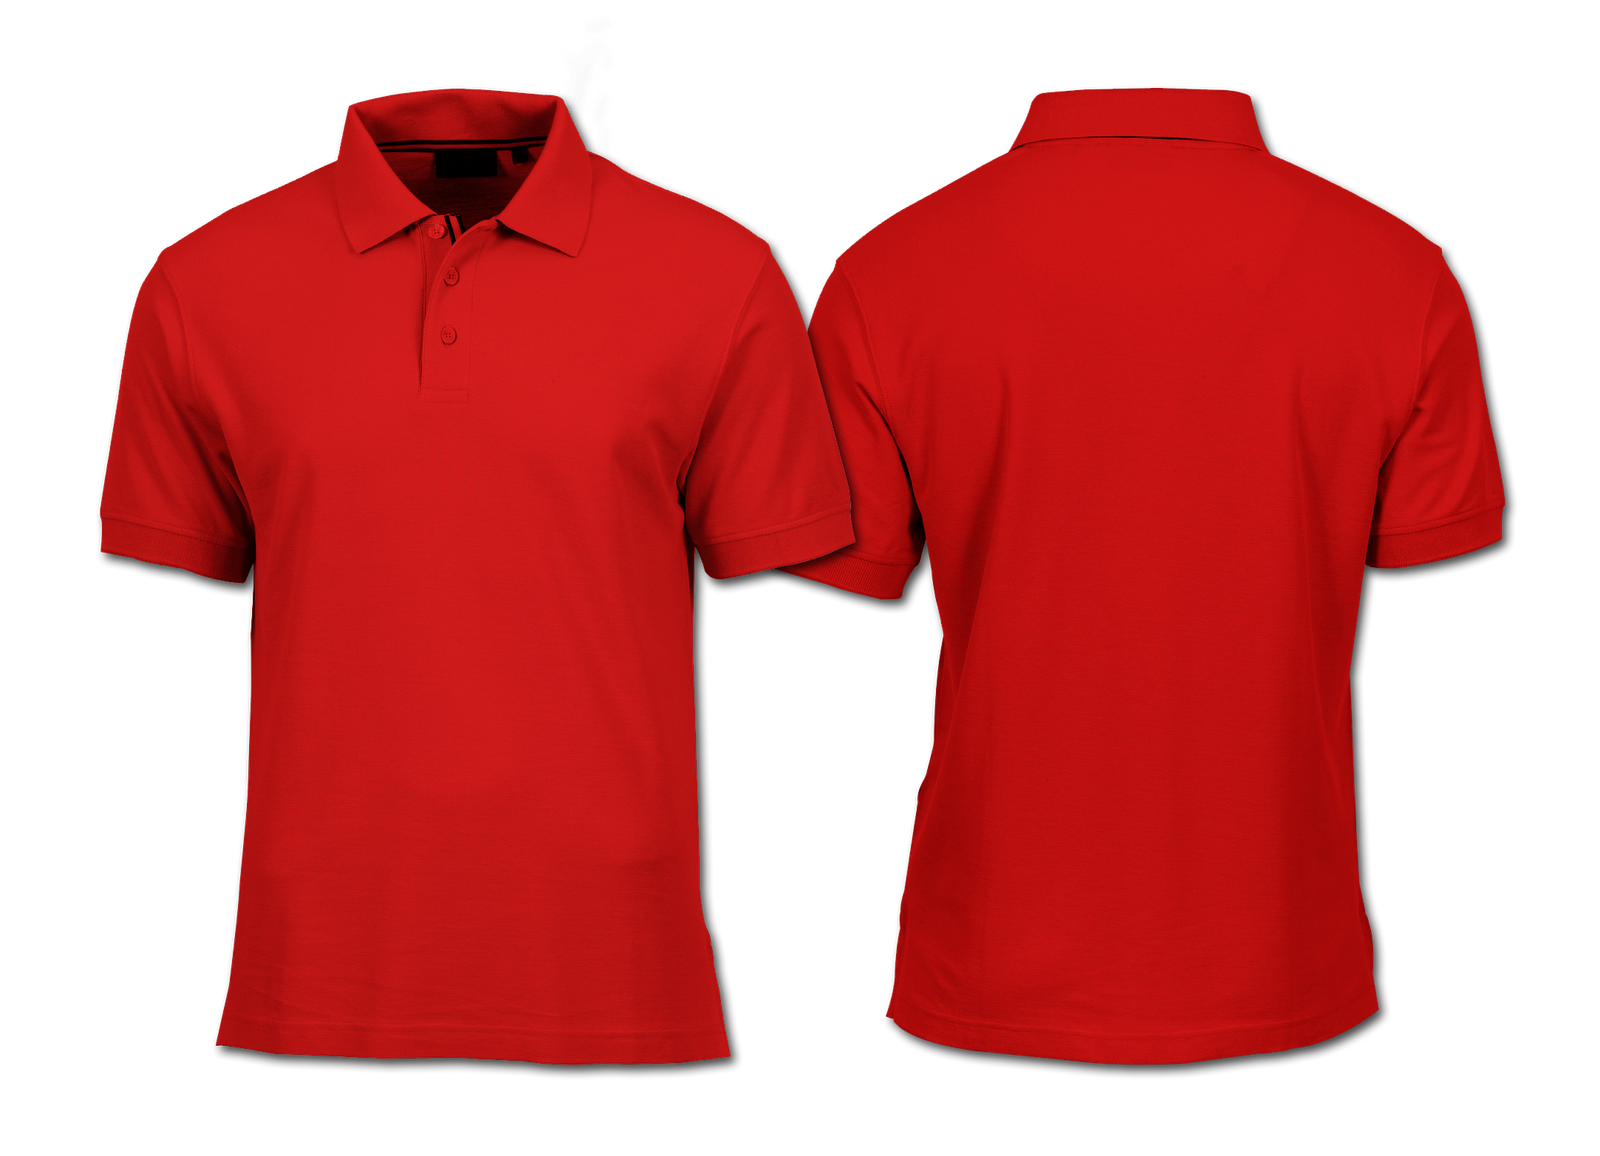 INDOMOCKUP: POLO SHIRT #1